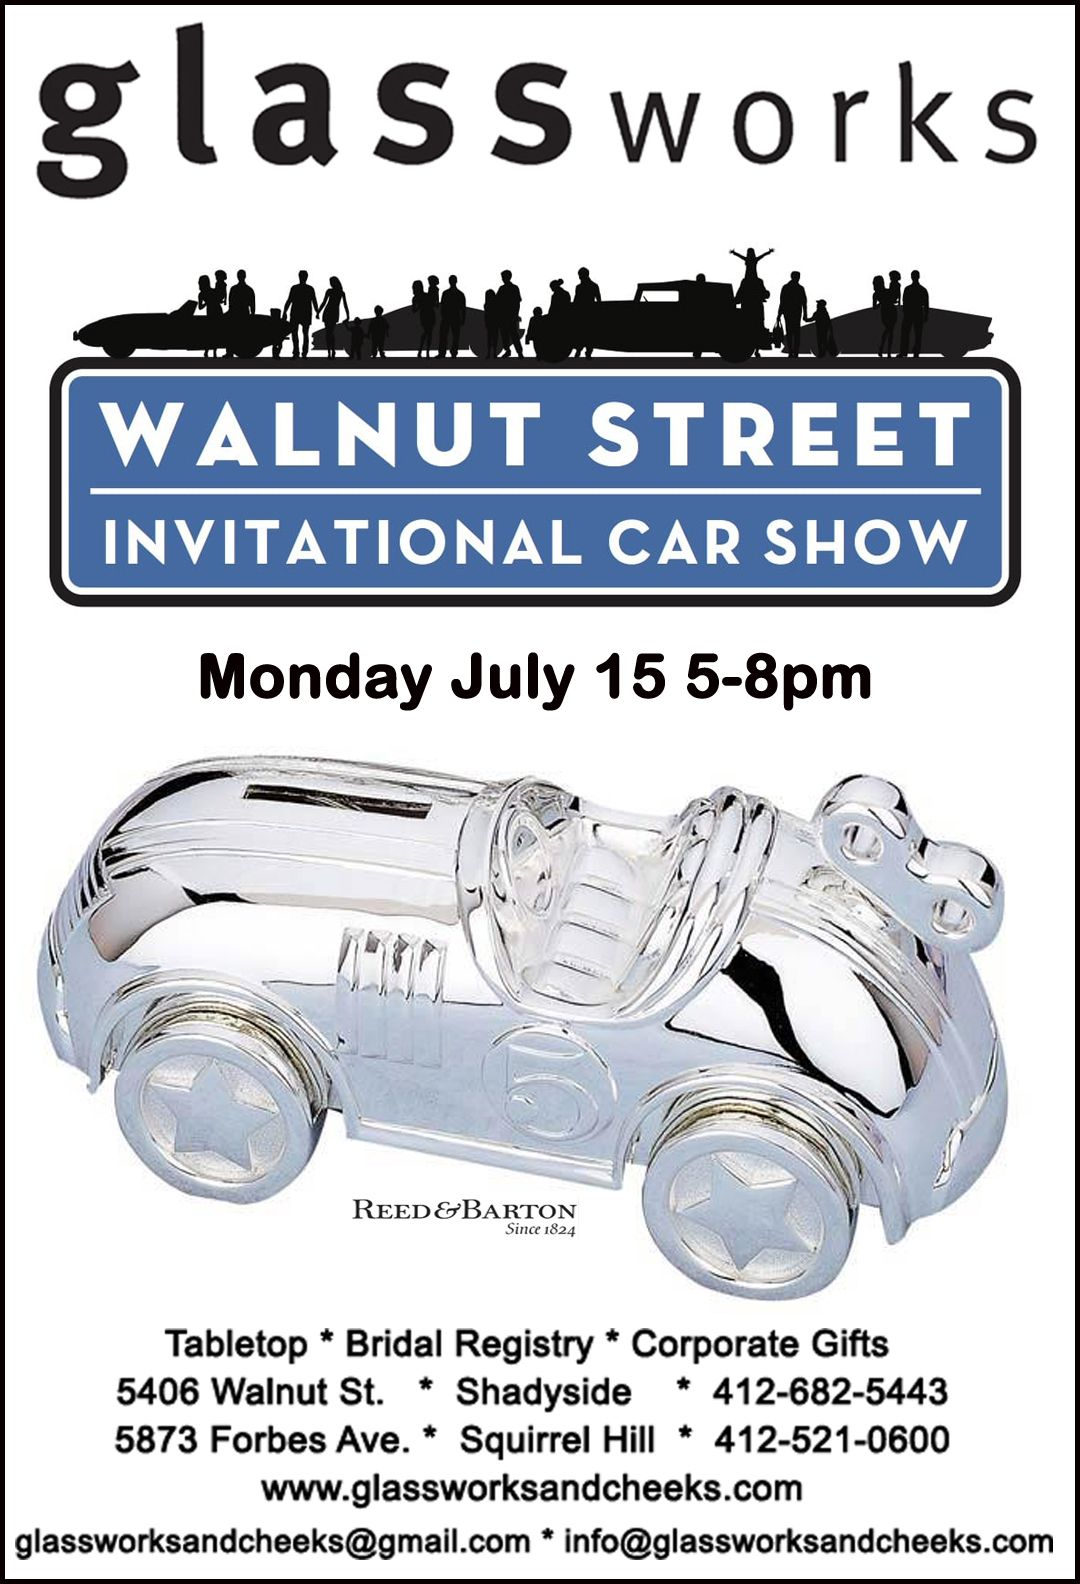 preview the sidewalk sale at glassworks during the walnut st car show on monday july 15 from 5 9 pm 135 rare cl classic gifts bridal gifts corporate gifts pinterest